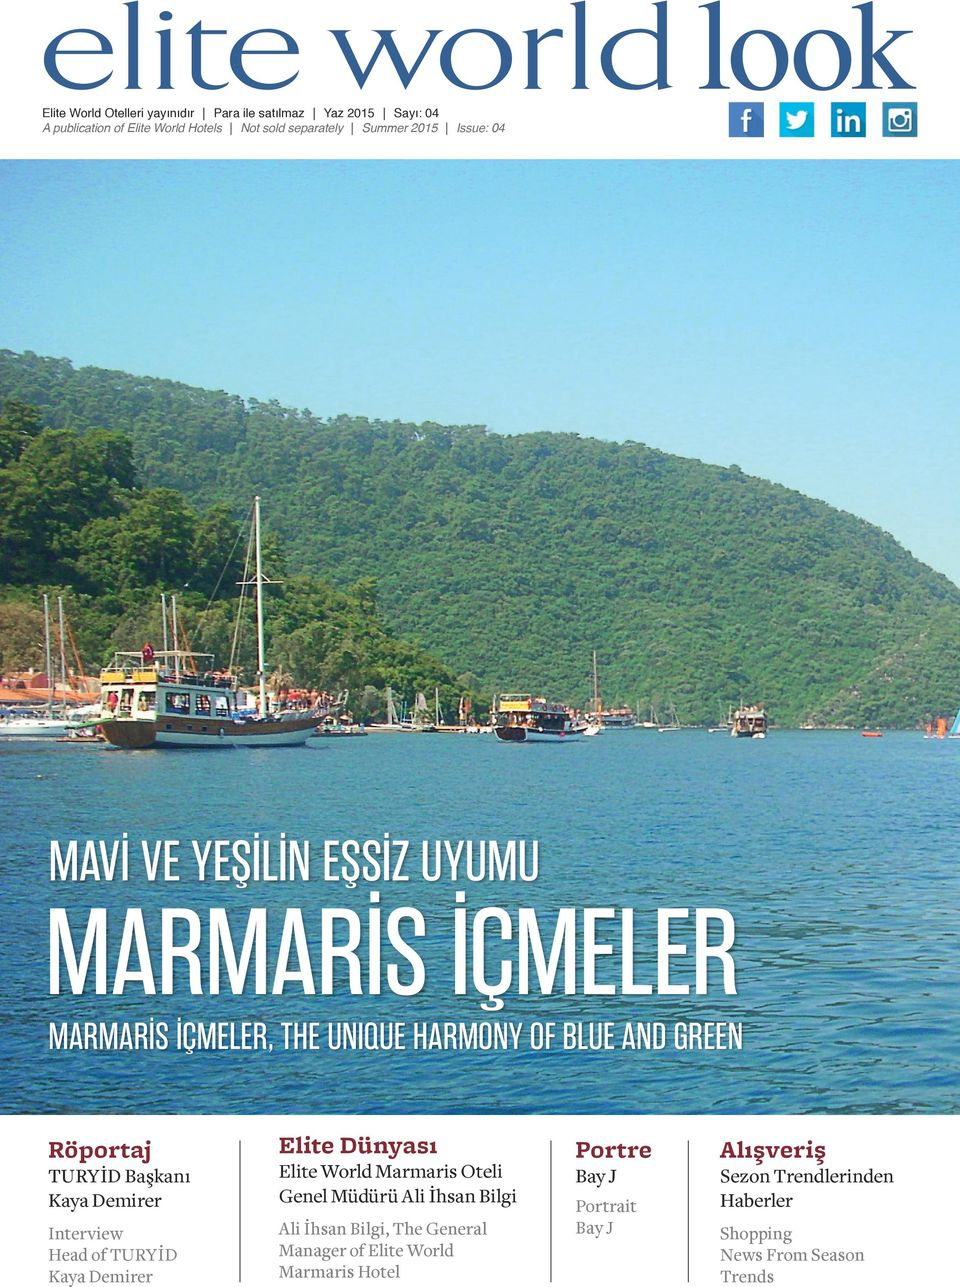 Demirer Interview Head of TURYİD Kaya Demirer Elite Dünyası Elite World Marmaris Oteli Genel Müdürü Ali İhsan Bilgi Ali İhsan Bilgi, The